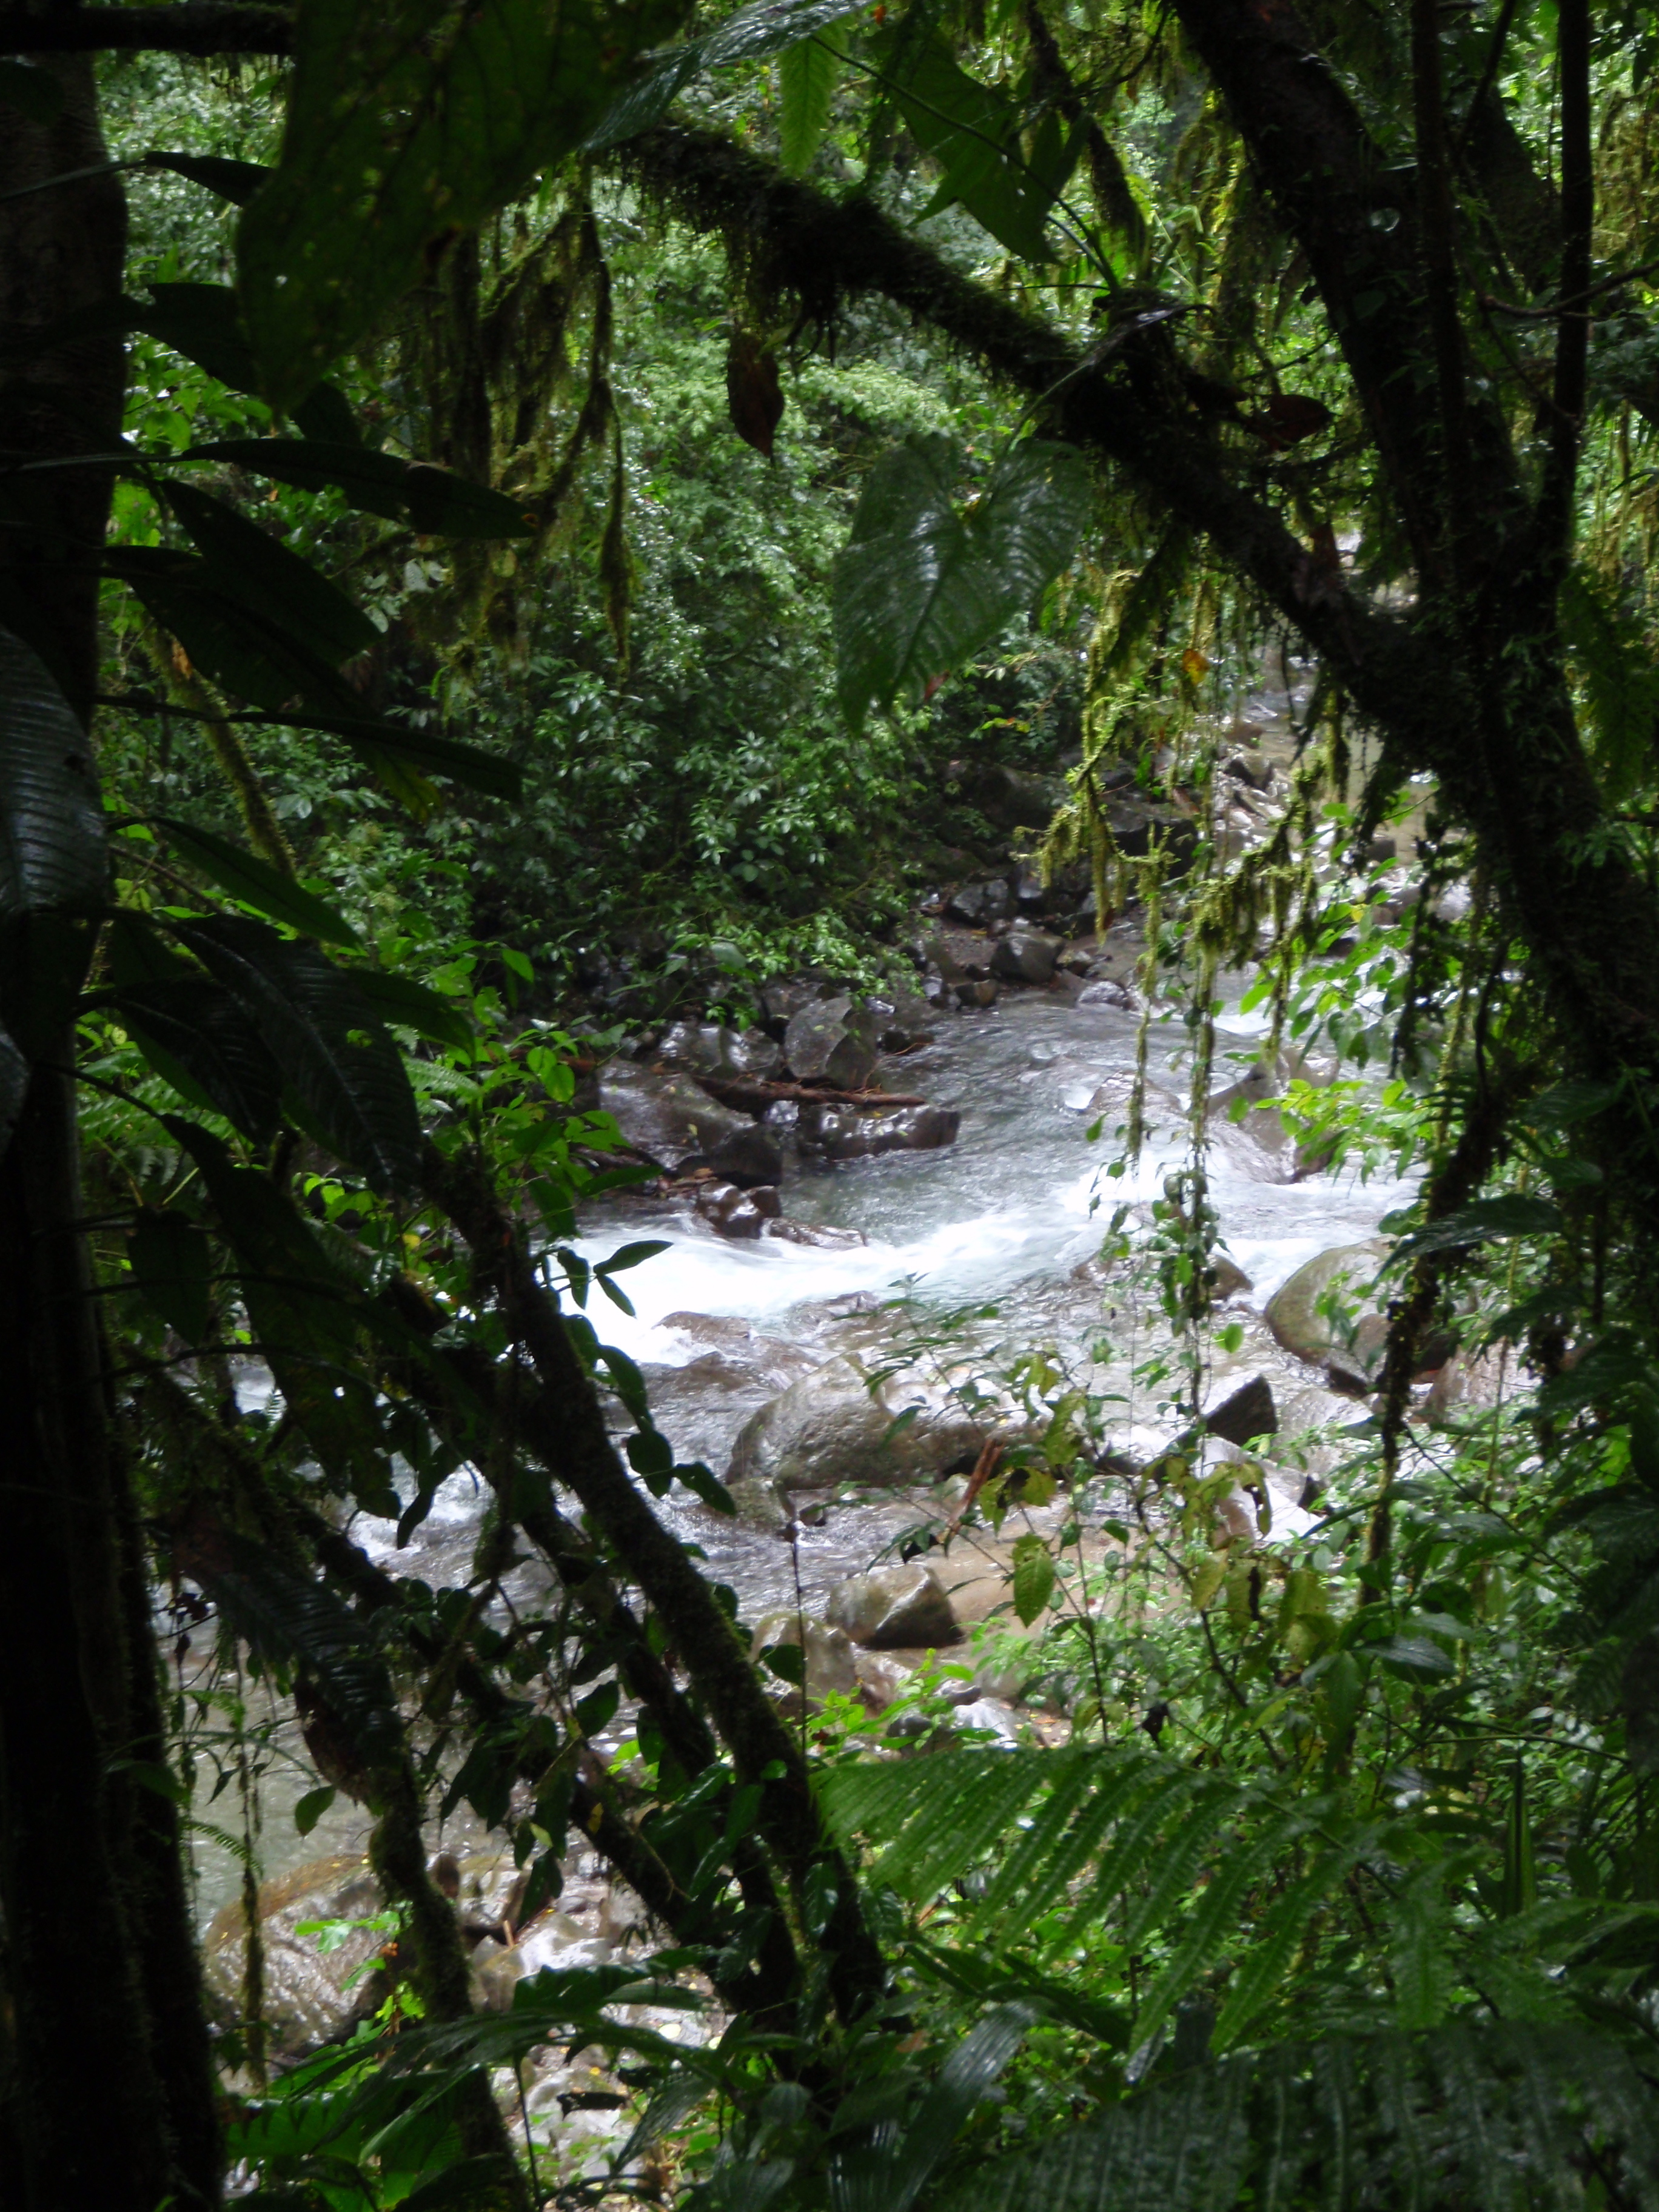 Downstream of Fortuna Falls